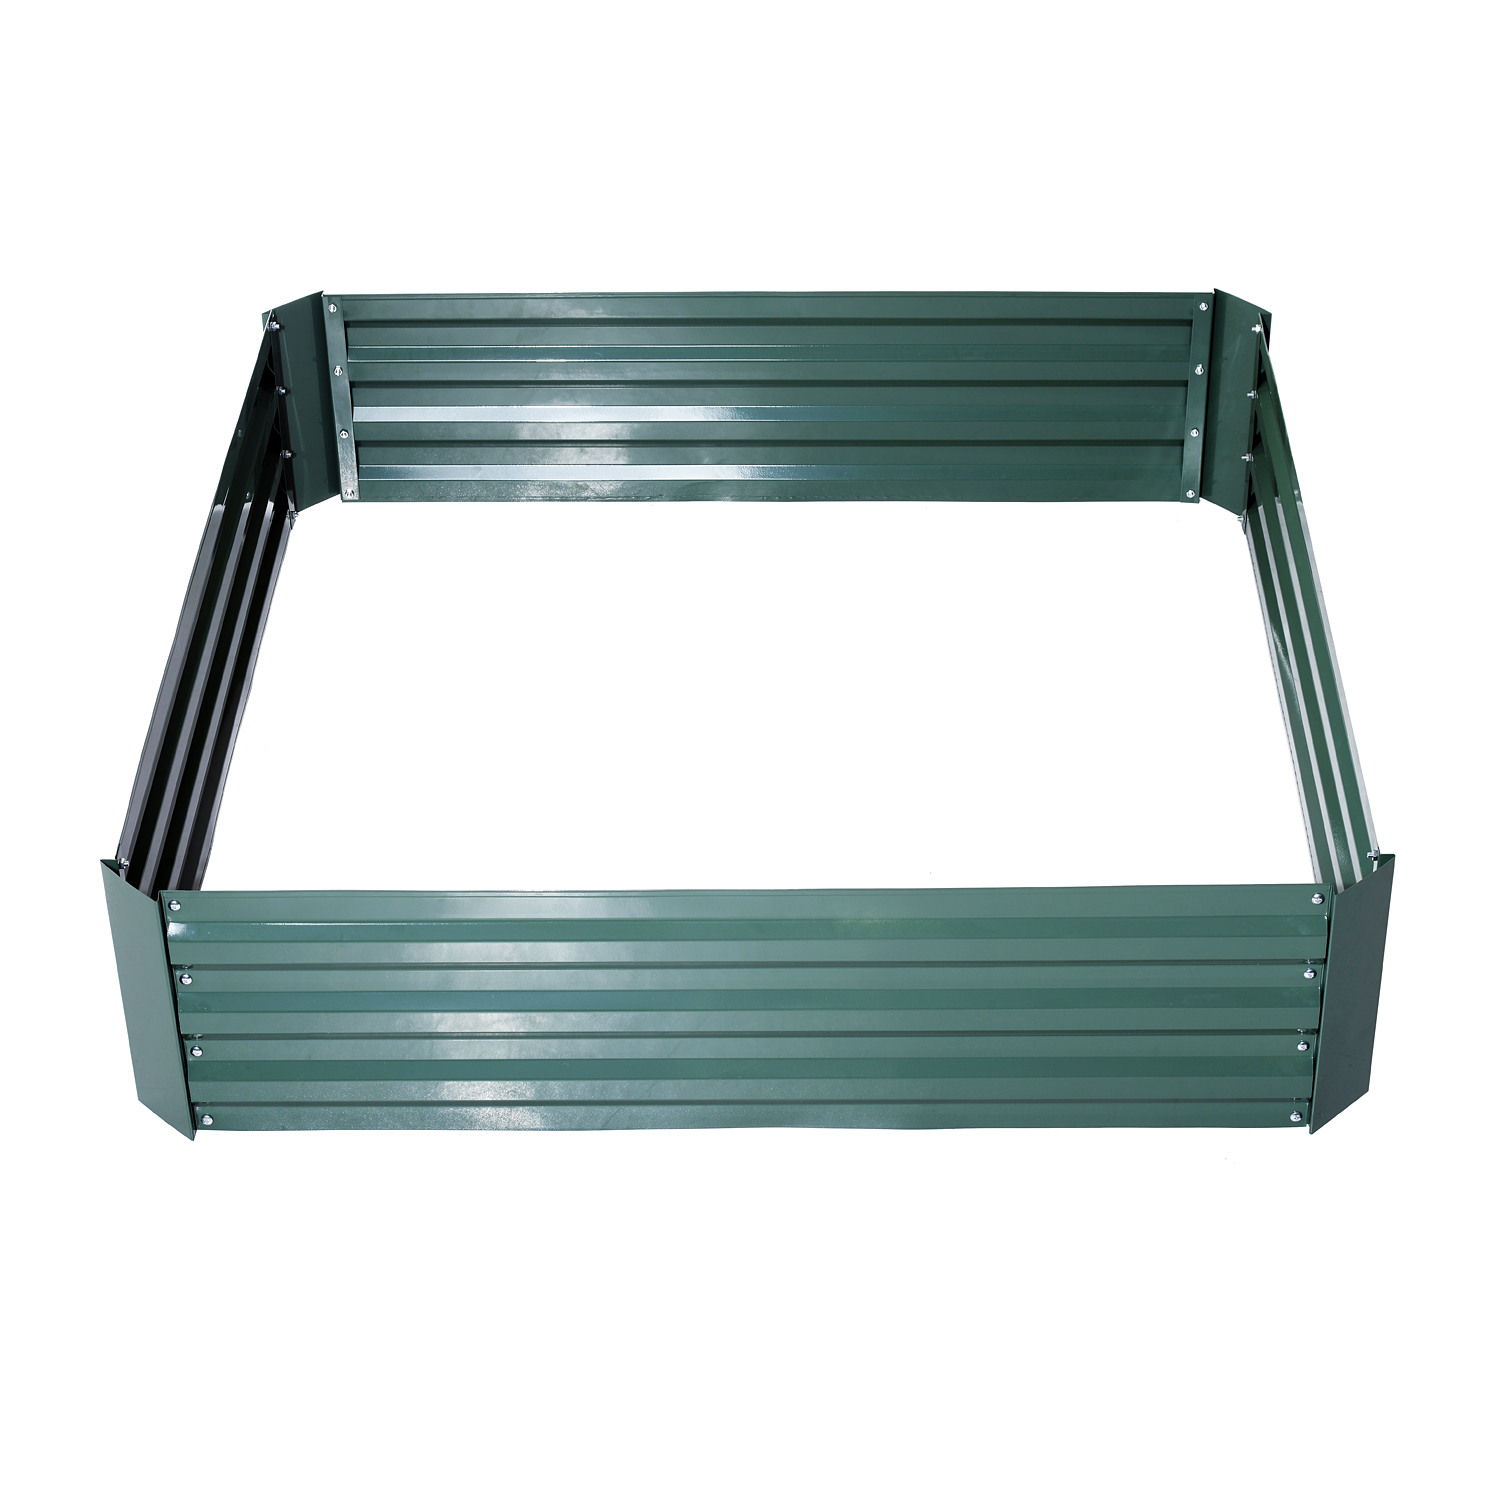 Picture of: Outsunny 49 X 49 X 12 Galvanized Metal Raised Garden Bed Green Garden Accessories Aosom Canada